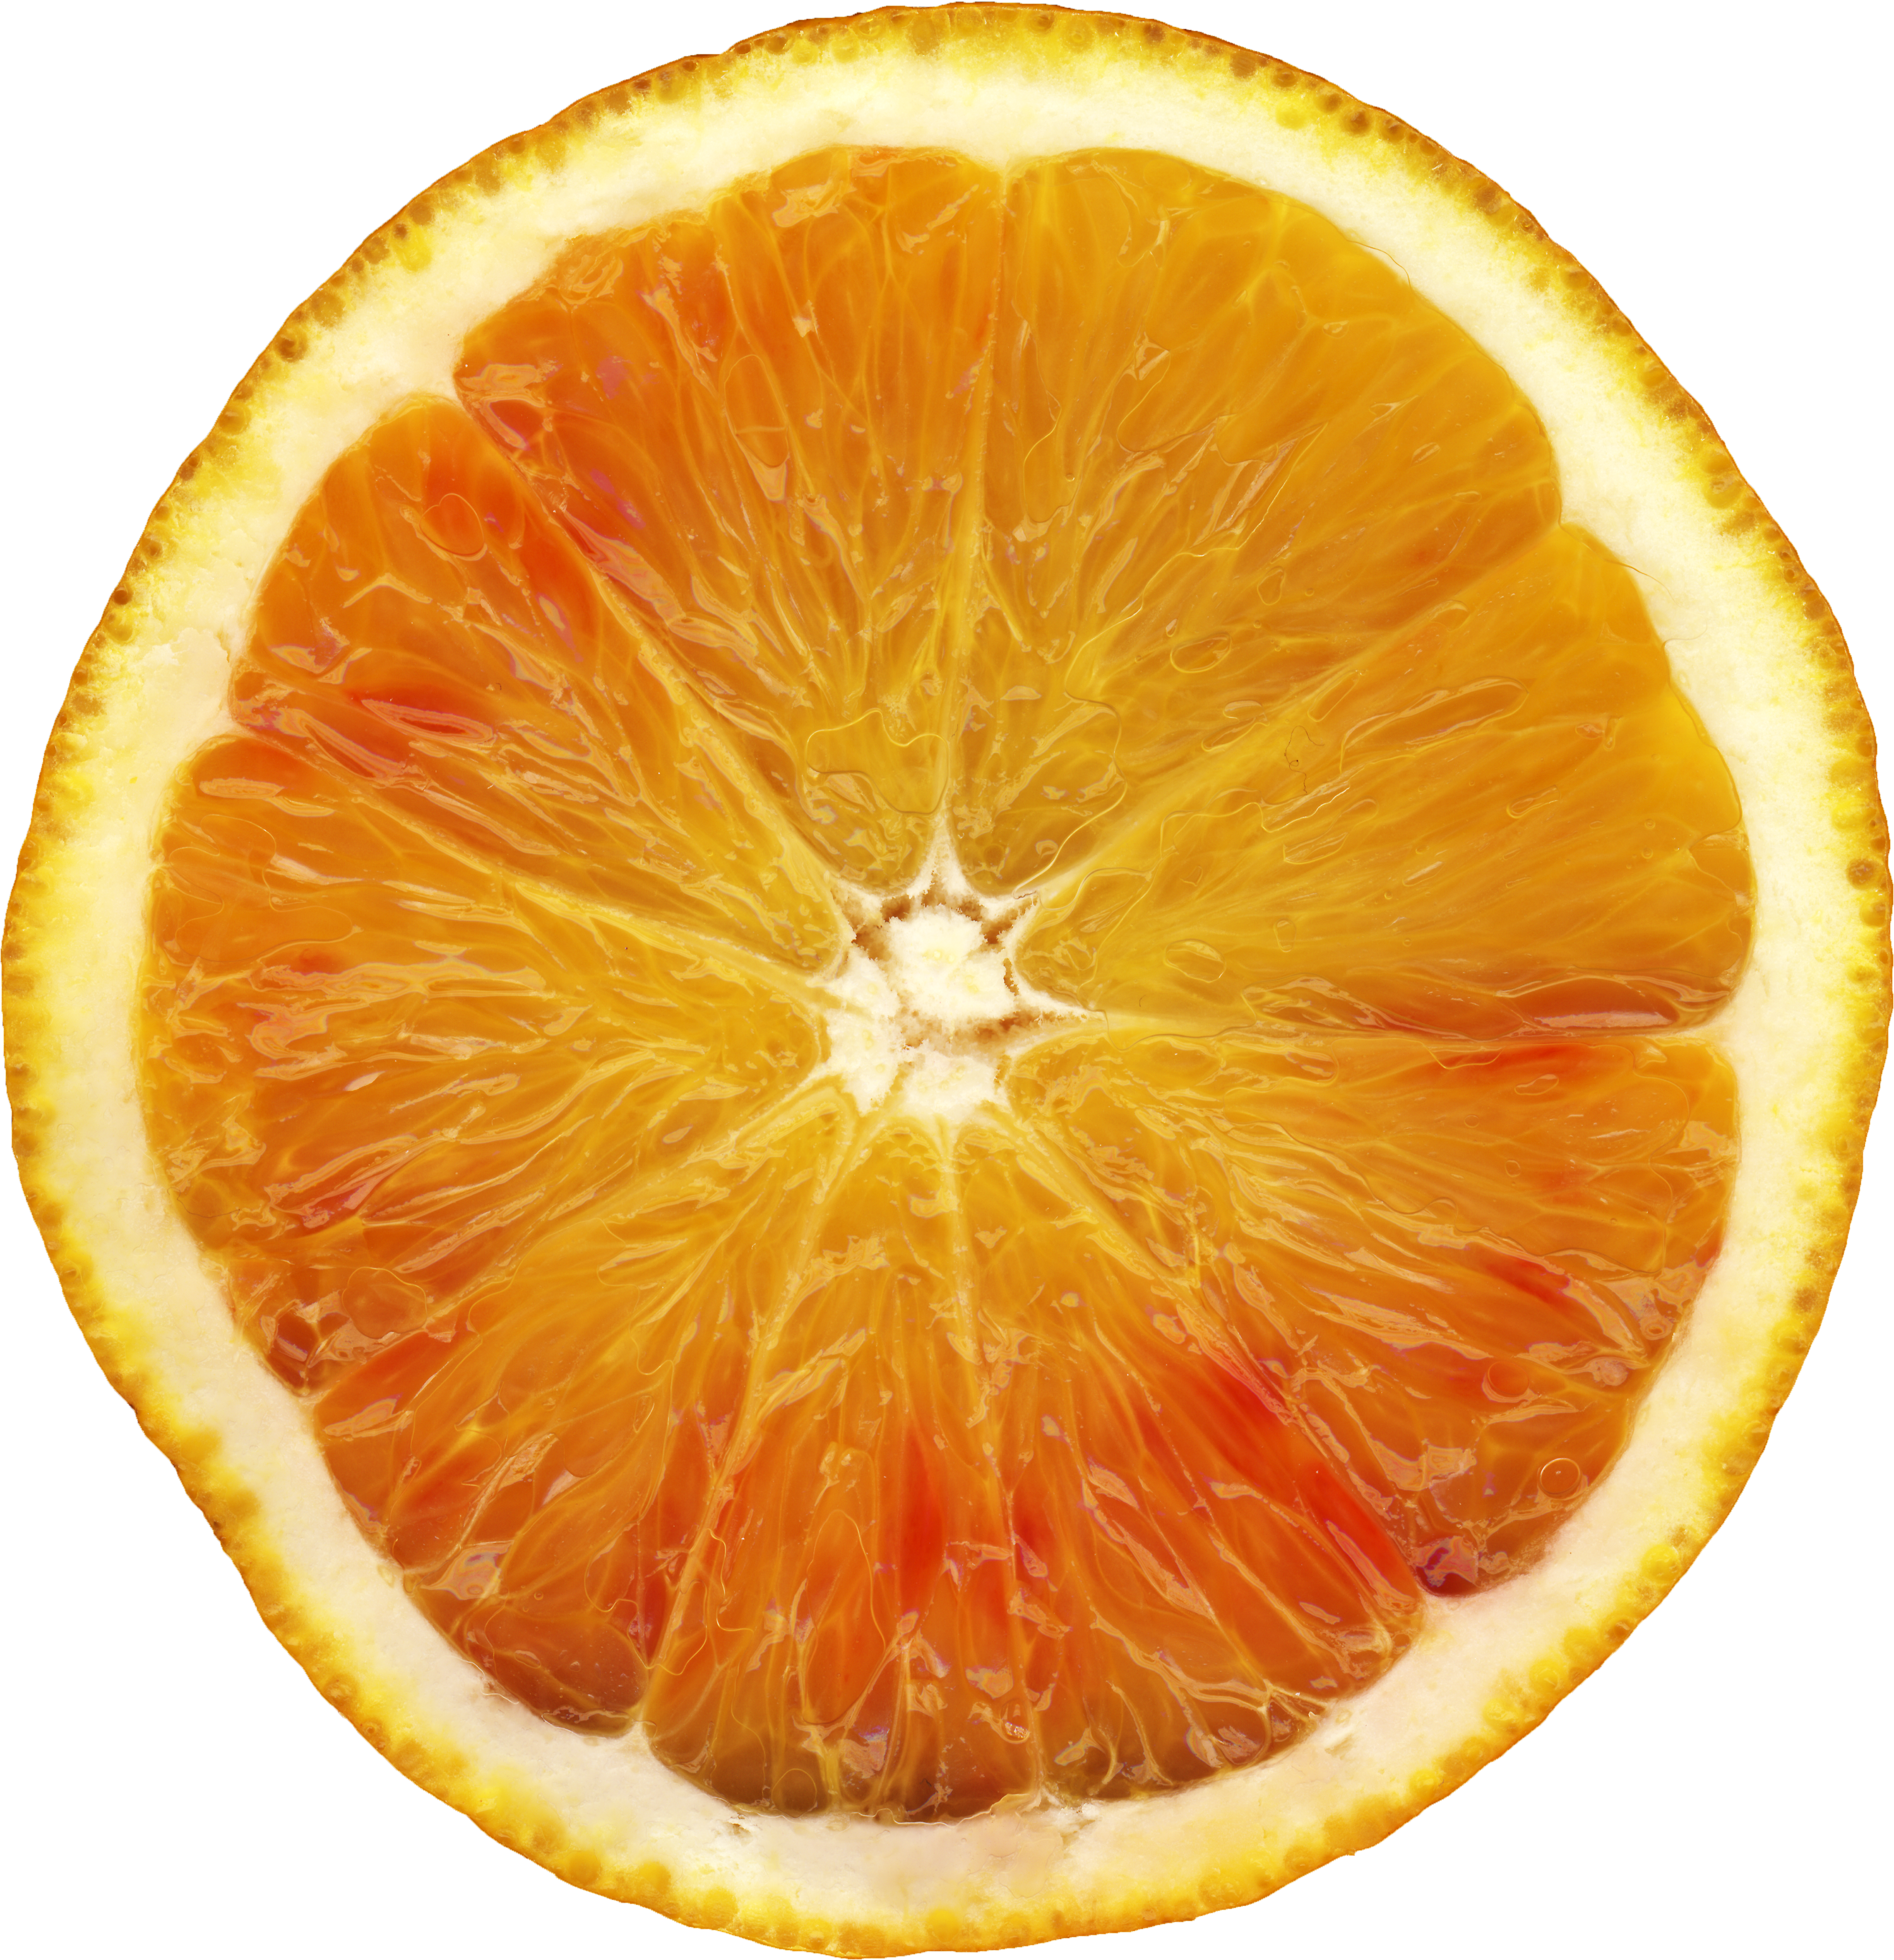 File:Scan of an orange.png - Wikimedia Commons